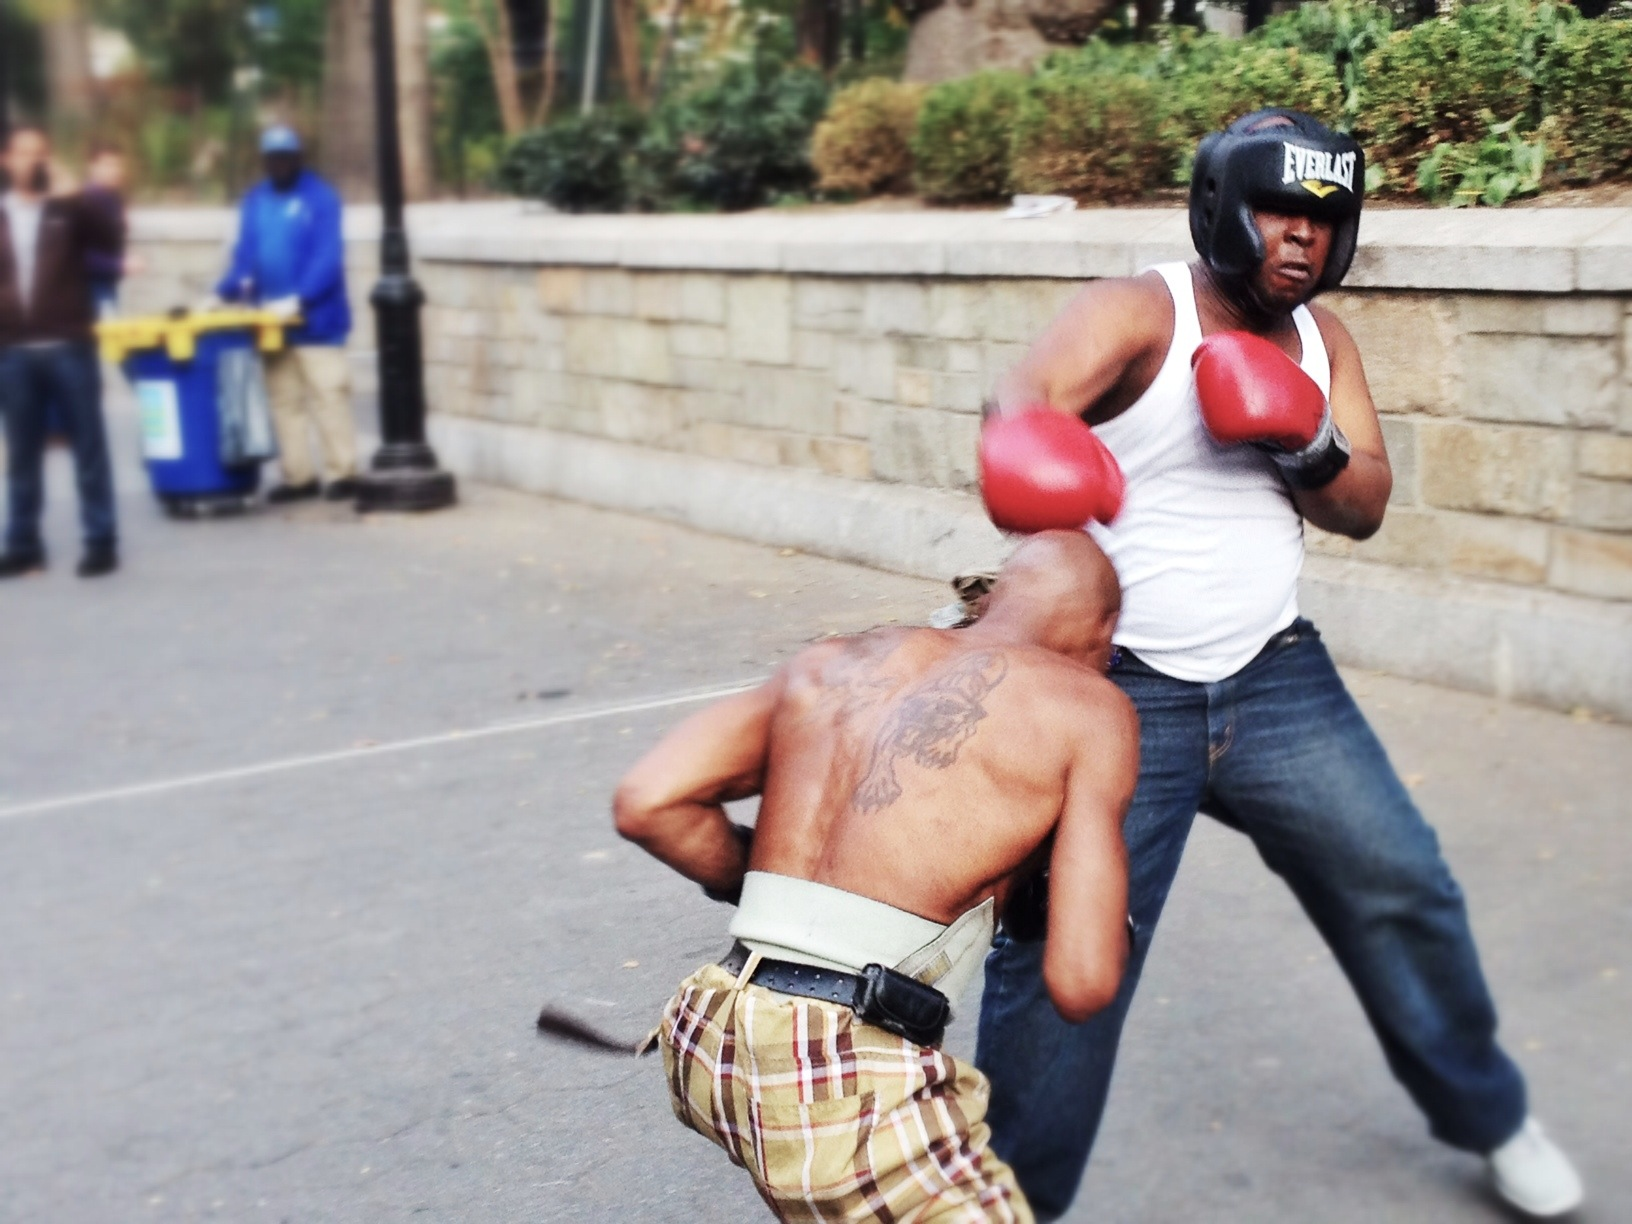 union_square_fight_3